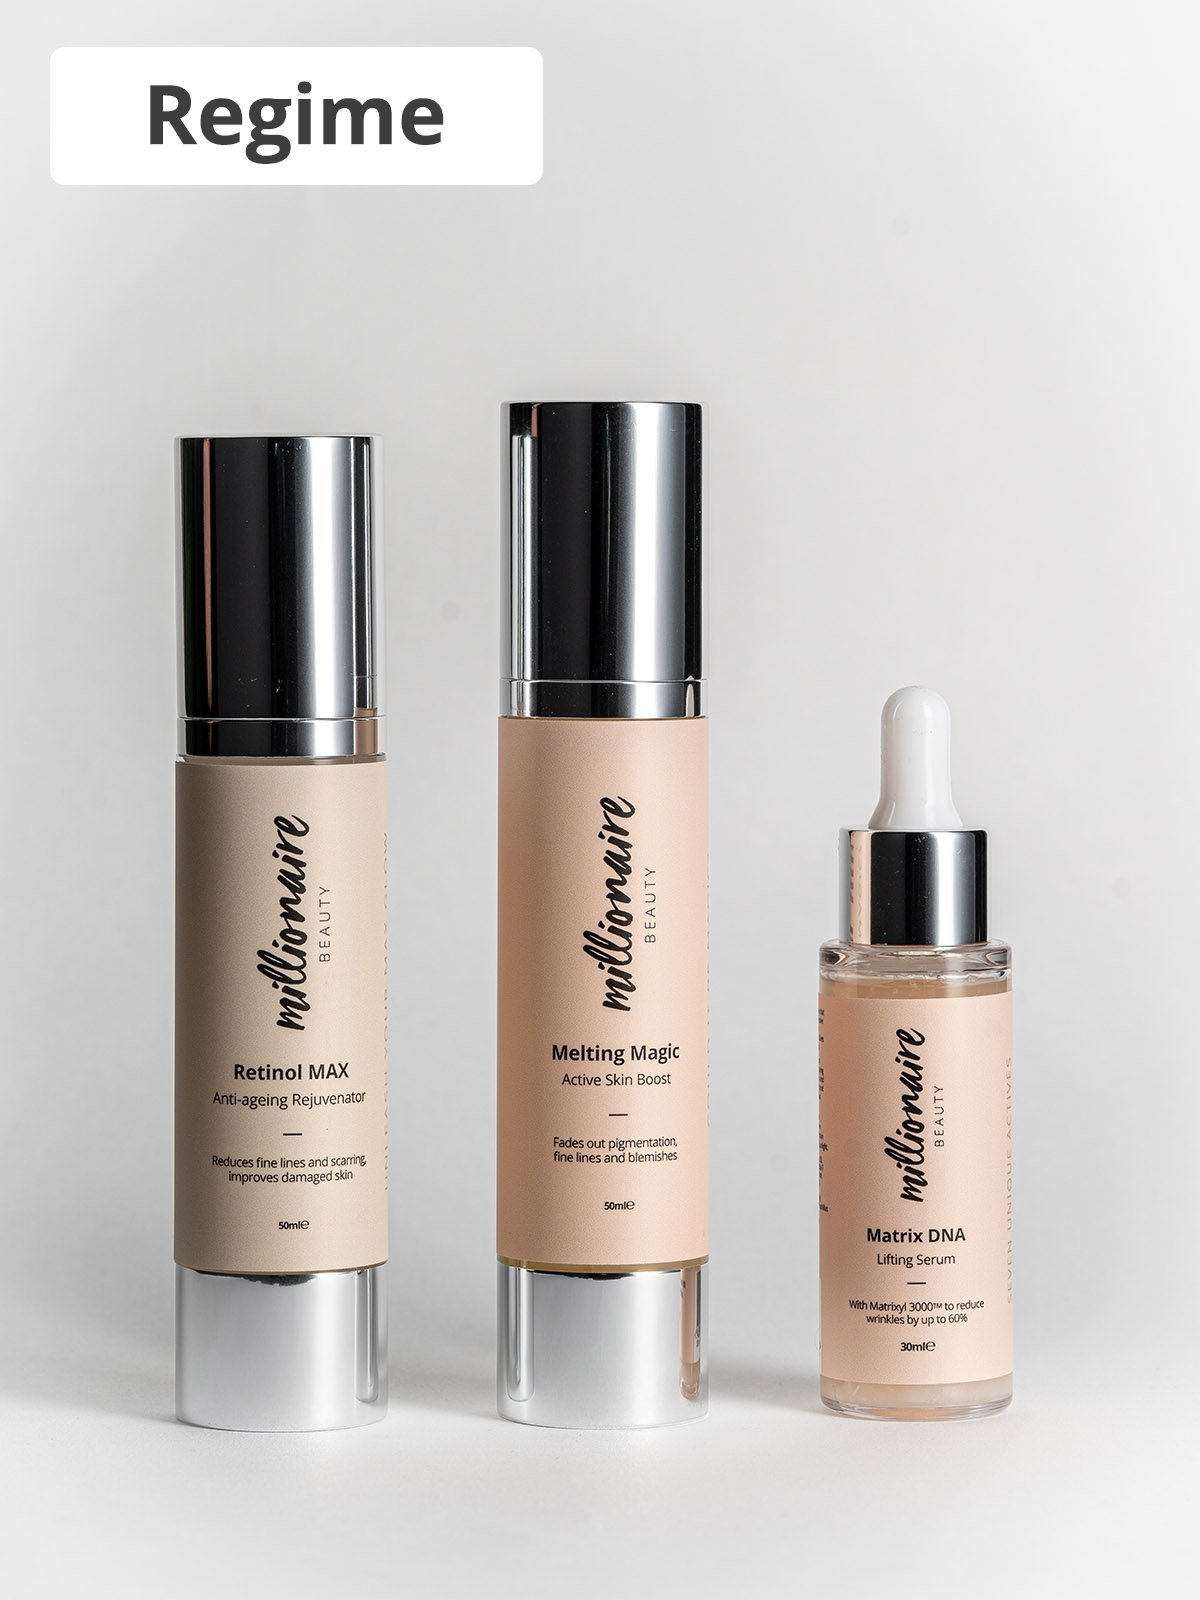 Power Lift Trio - works with your DNA to reverse the signs of ageing, , Millionaire Beauty, Skincare routine, paulas choice, cult beauty, skincare bundle, face serums, night time skincare routine, Morning skincare routine